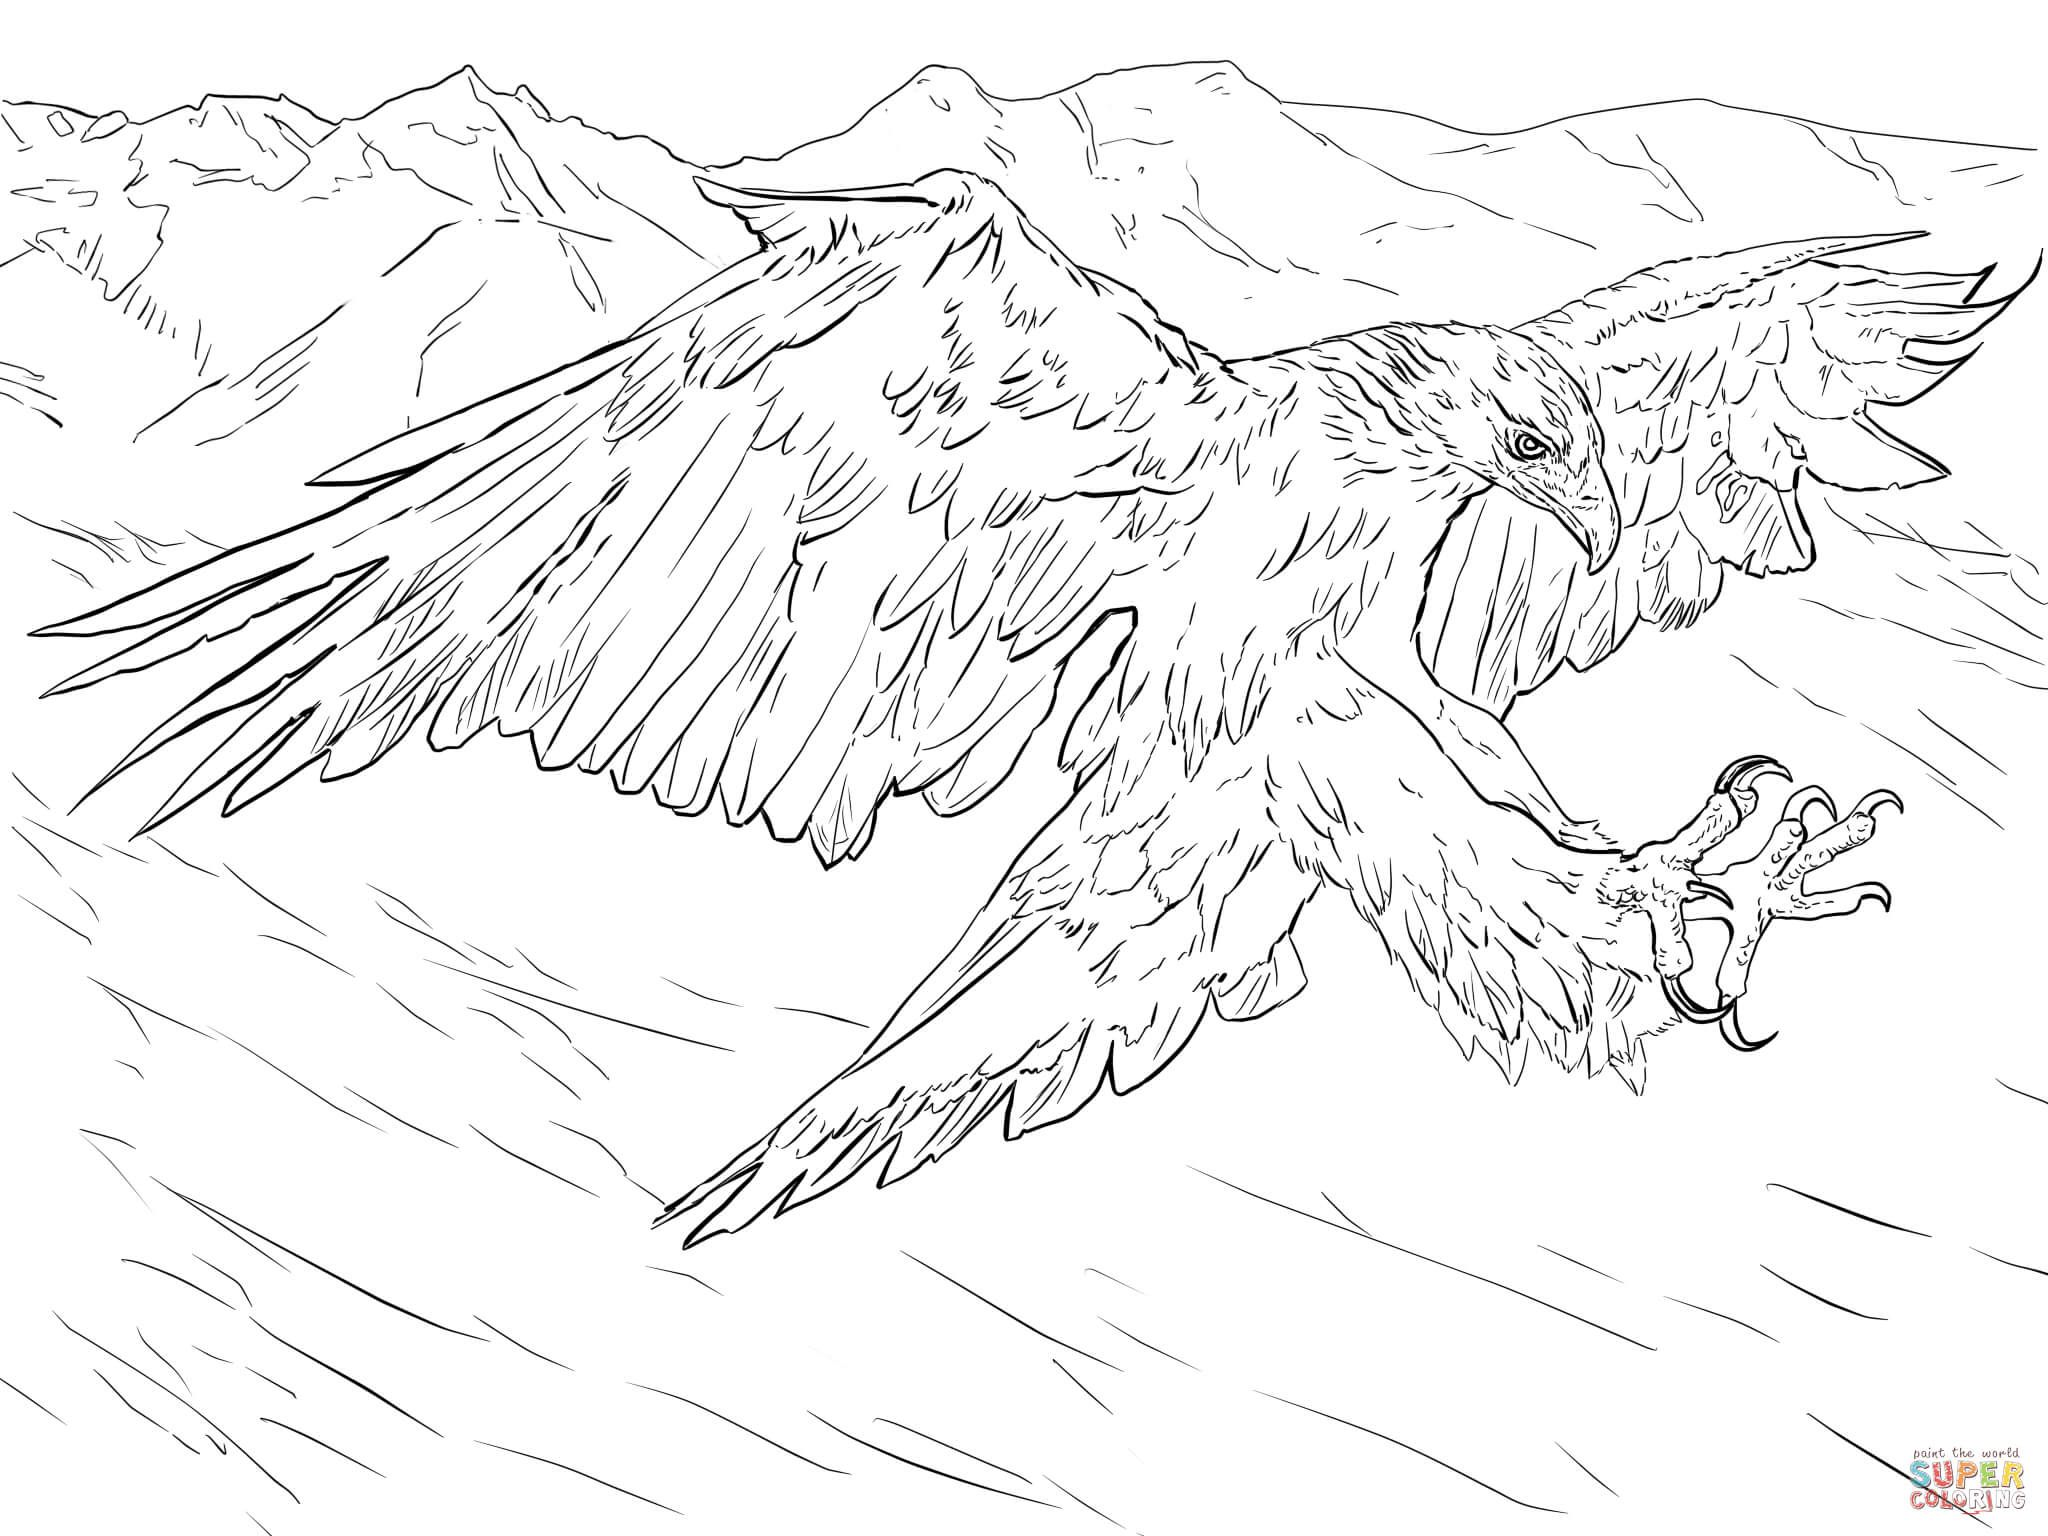 pin by leinen on art free printable coloring golden get gruffalo cute birthday card adult coloring pages Golden Eagle Coloring Page